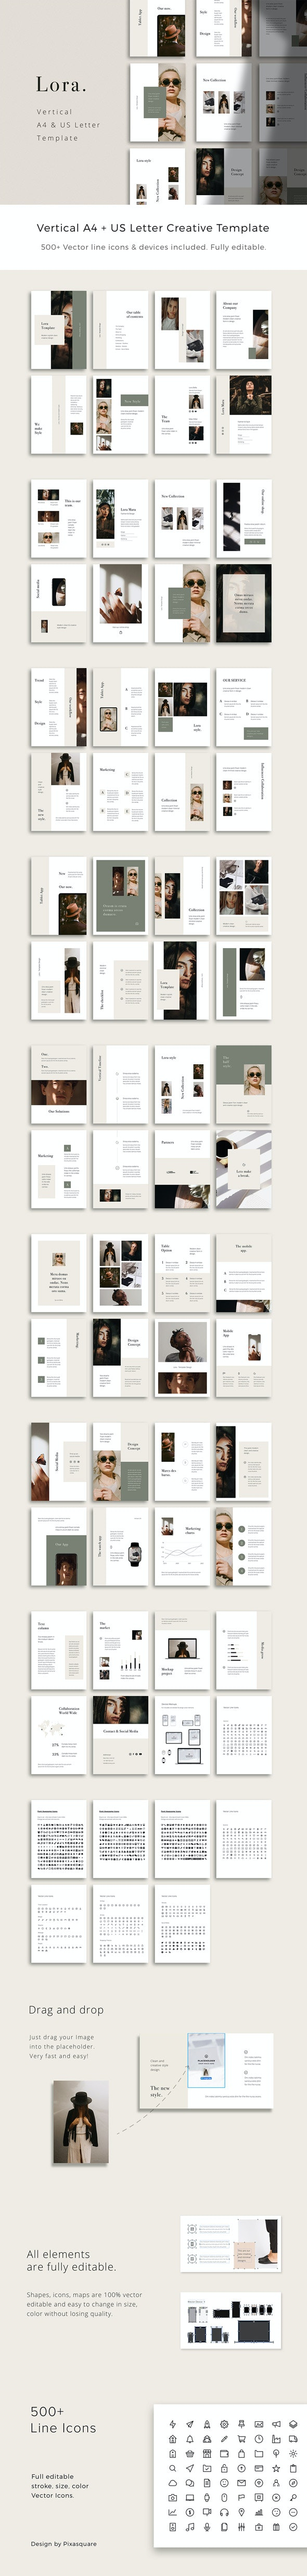 LORA - Vertical Powerpoint Presentation Template - Creative PowerPoint Templates